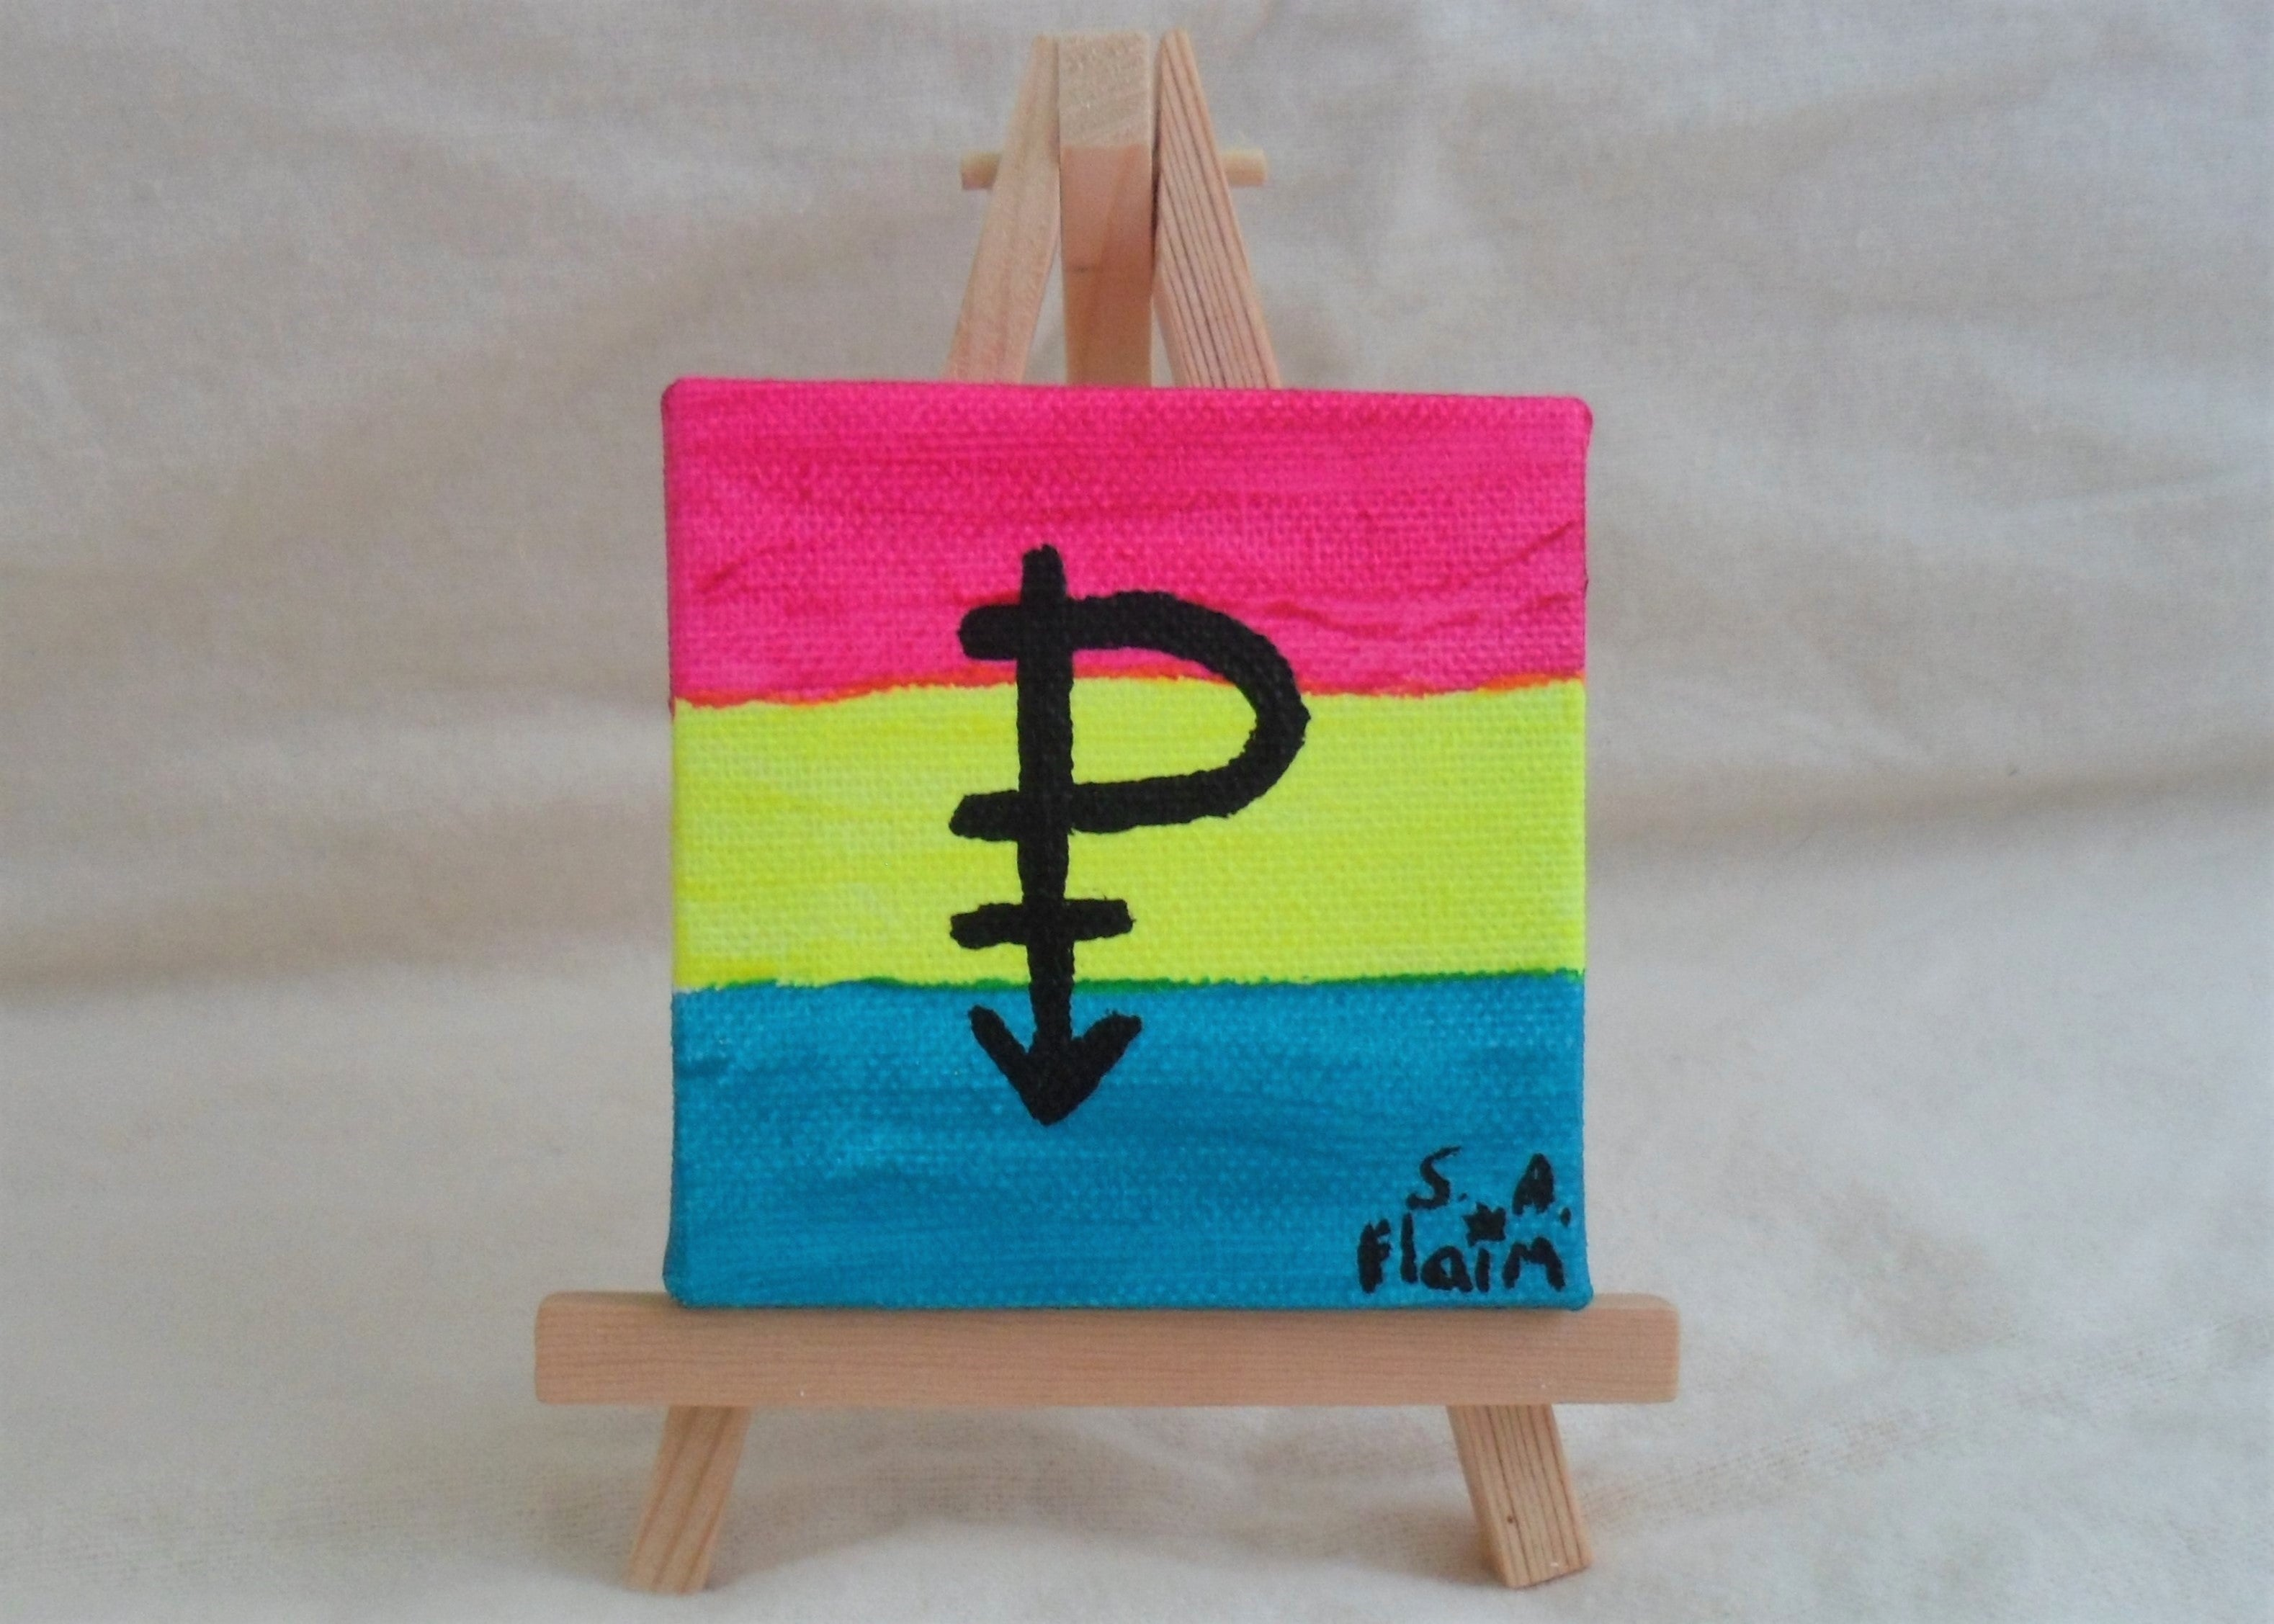 Pansexual Mini Easel Art by S.A.Flaim - Tully Crafts